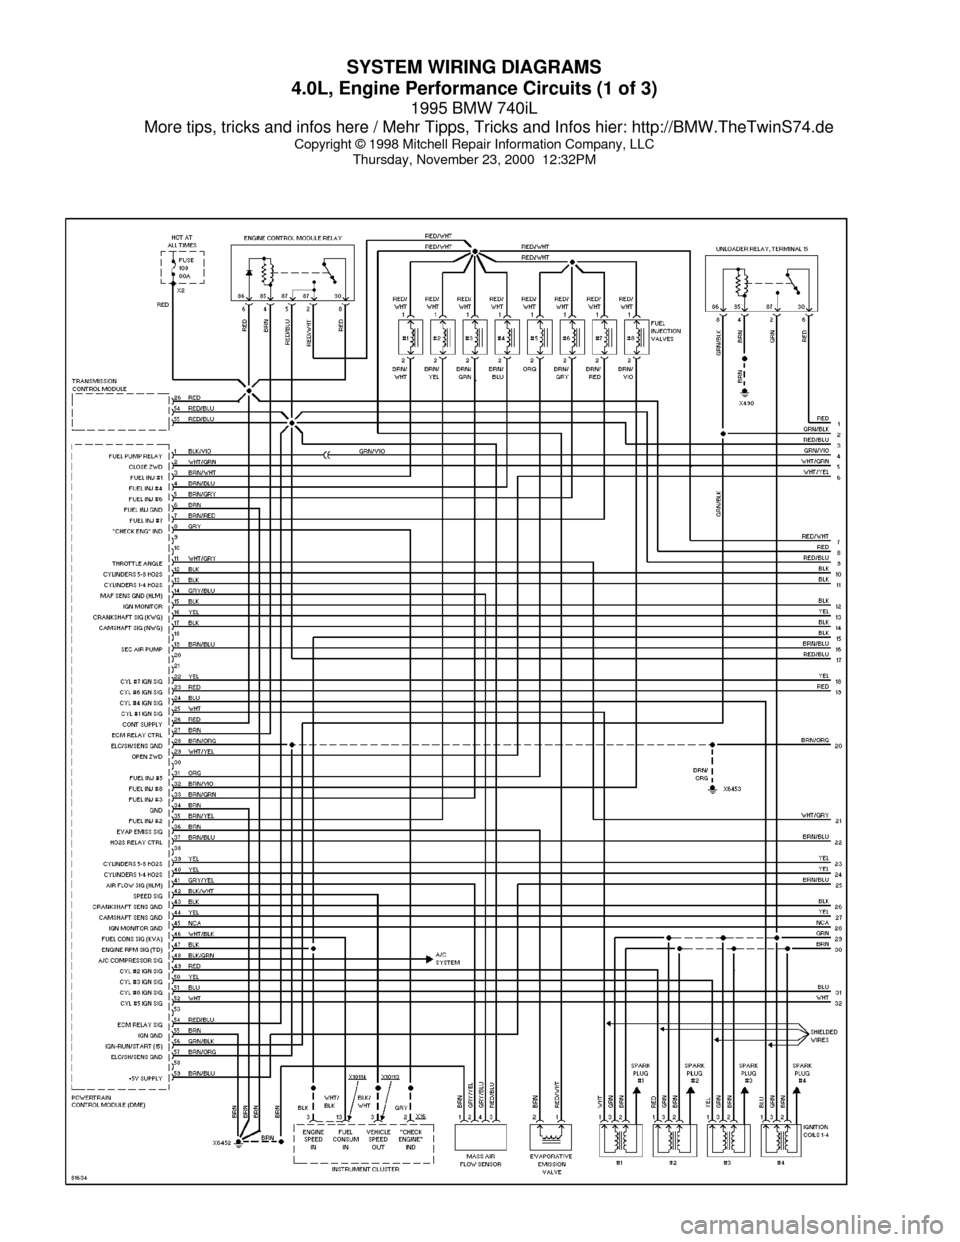 2007 dodge nitro window diagram wiring schematic 2007 bmw 530i starter diagram wiring schematic bmw 740il 1995 e38 system wiring diagrams